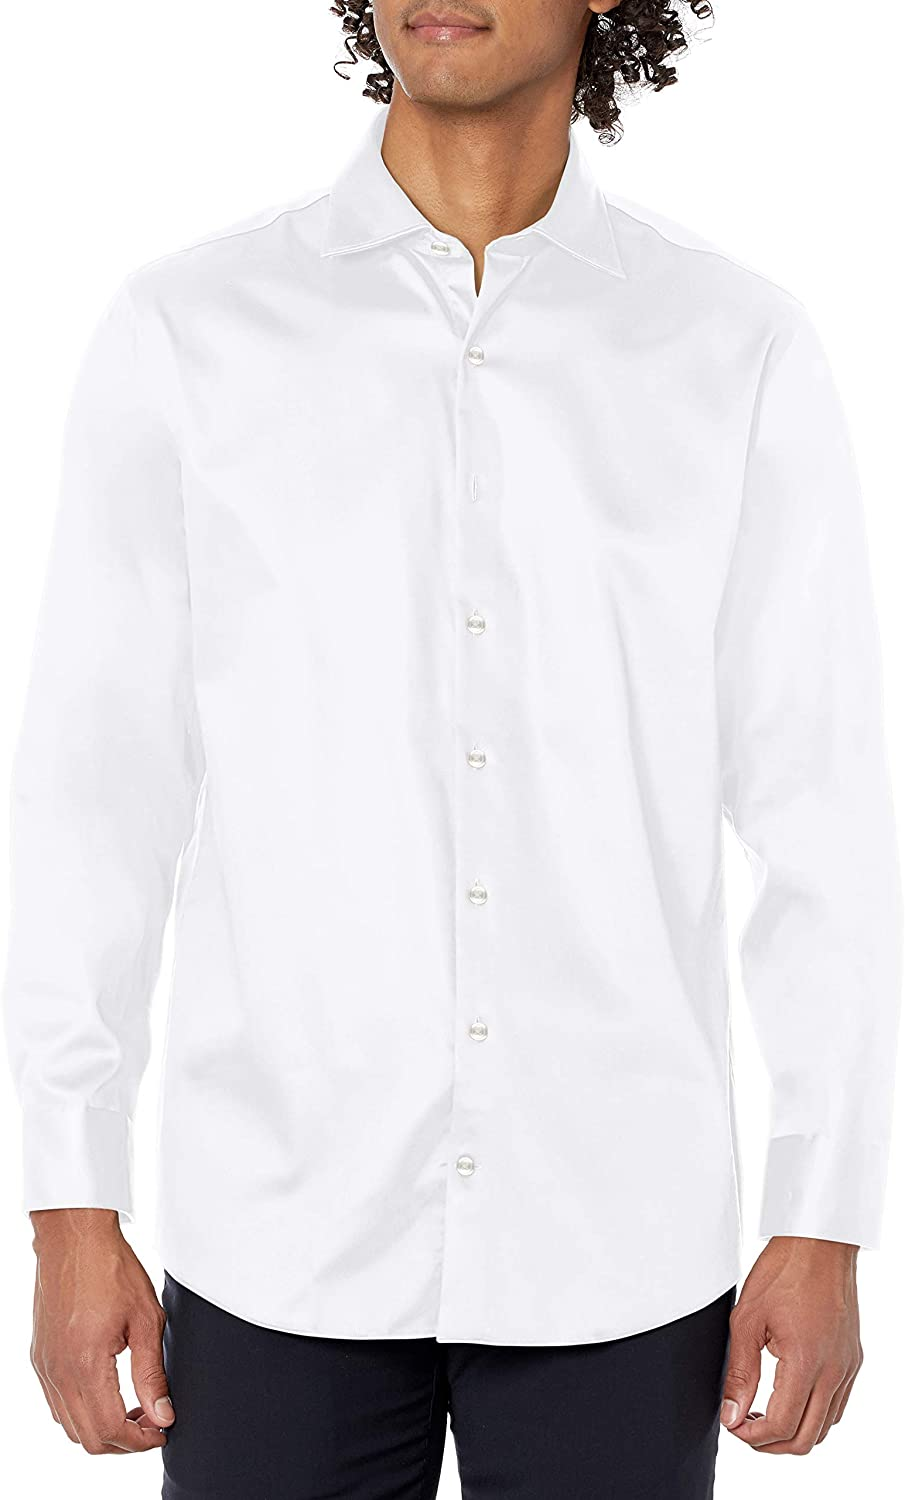 Kenneth Cole REACTION Men's Dress Shirt Regular Fit Stretch Collar Non Iron Solid